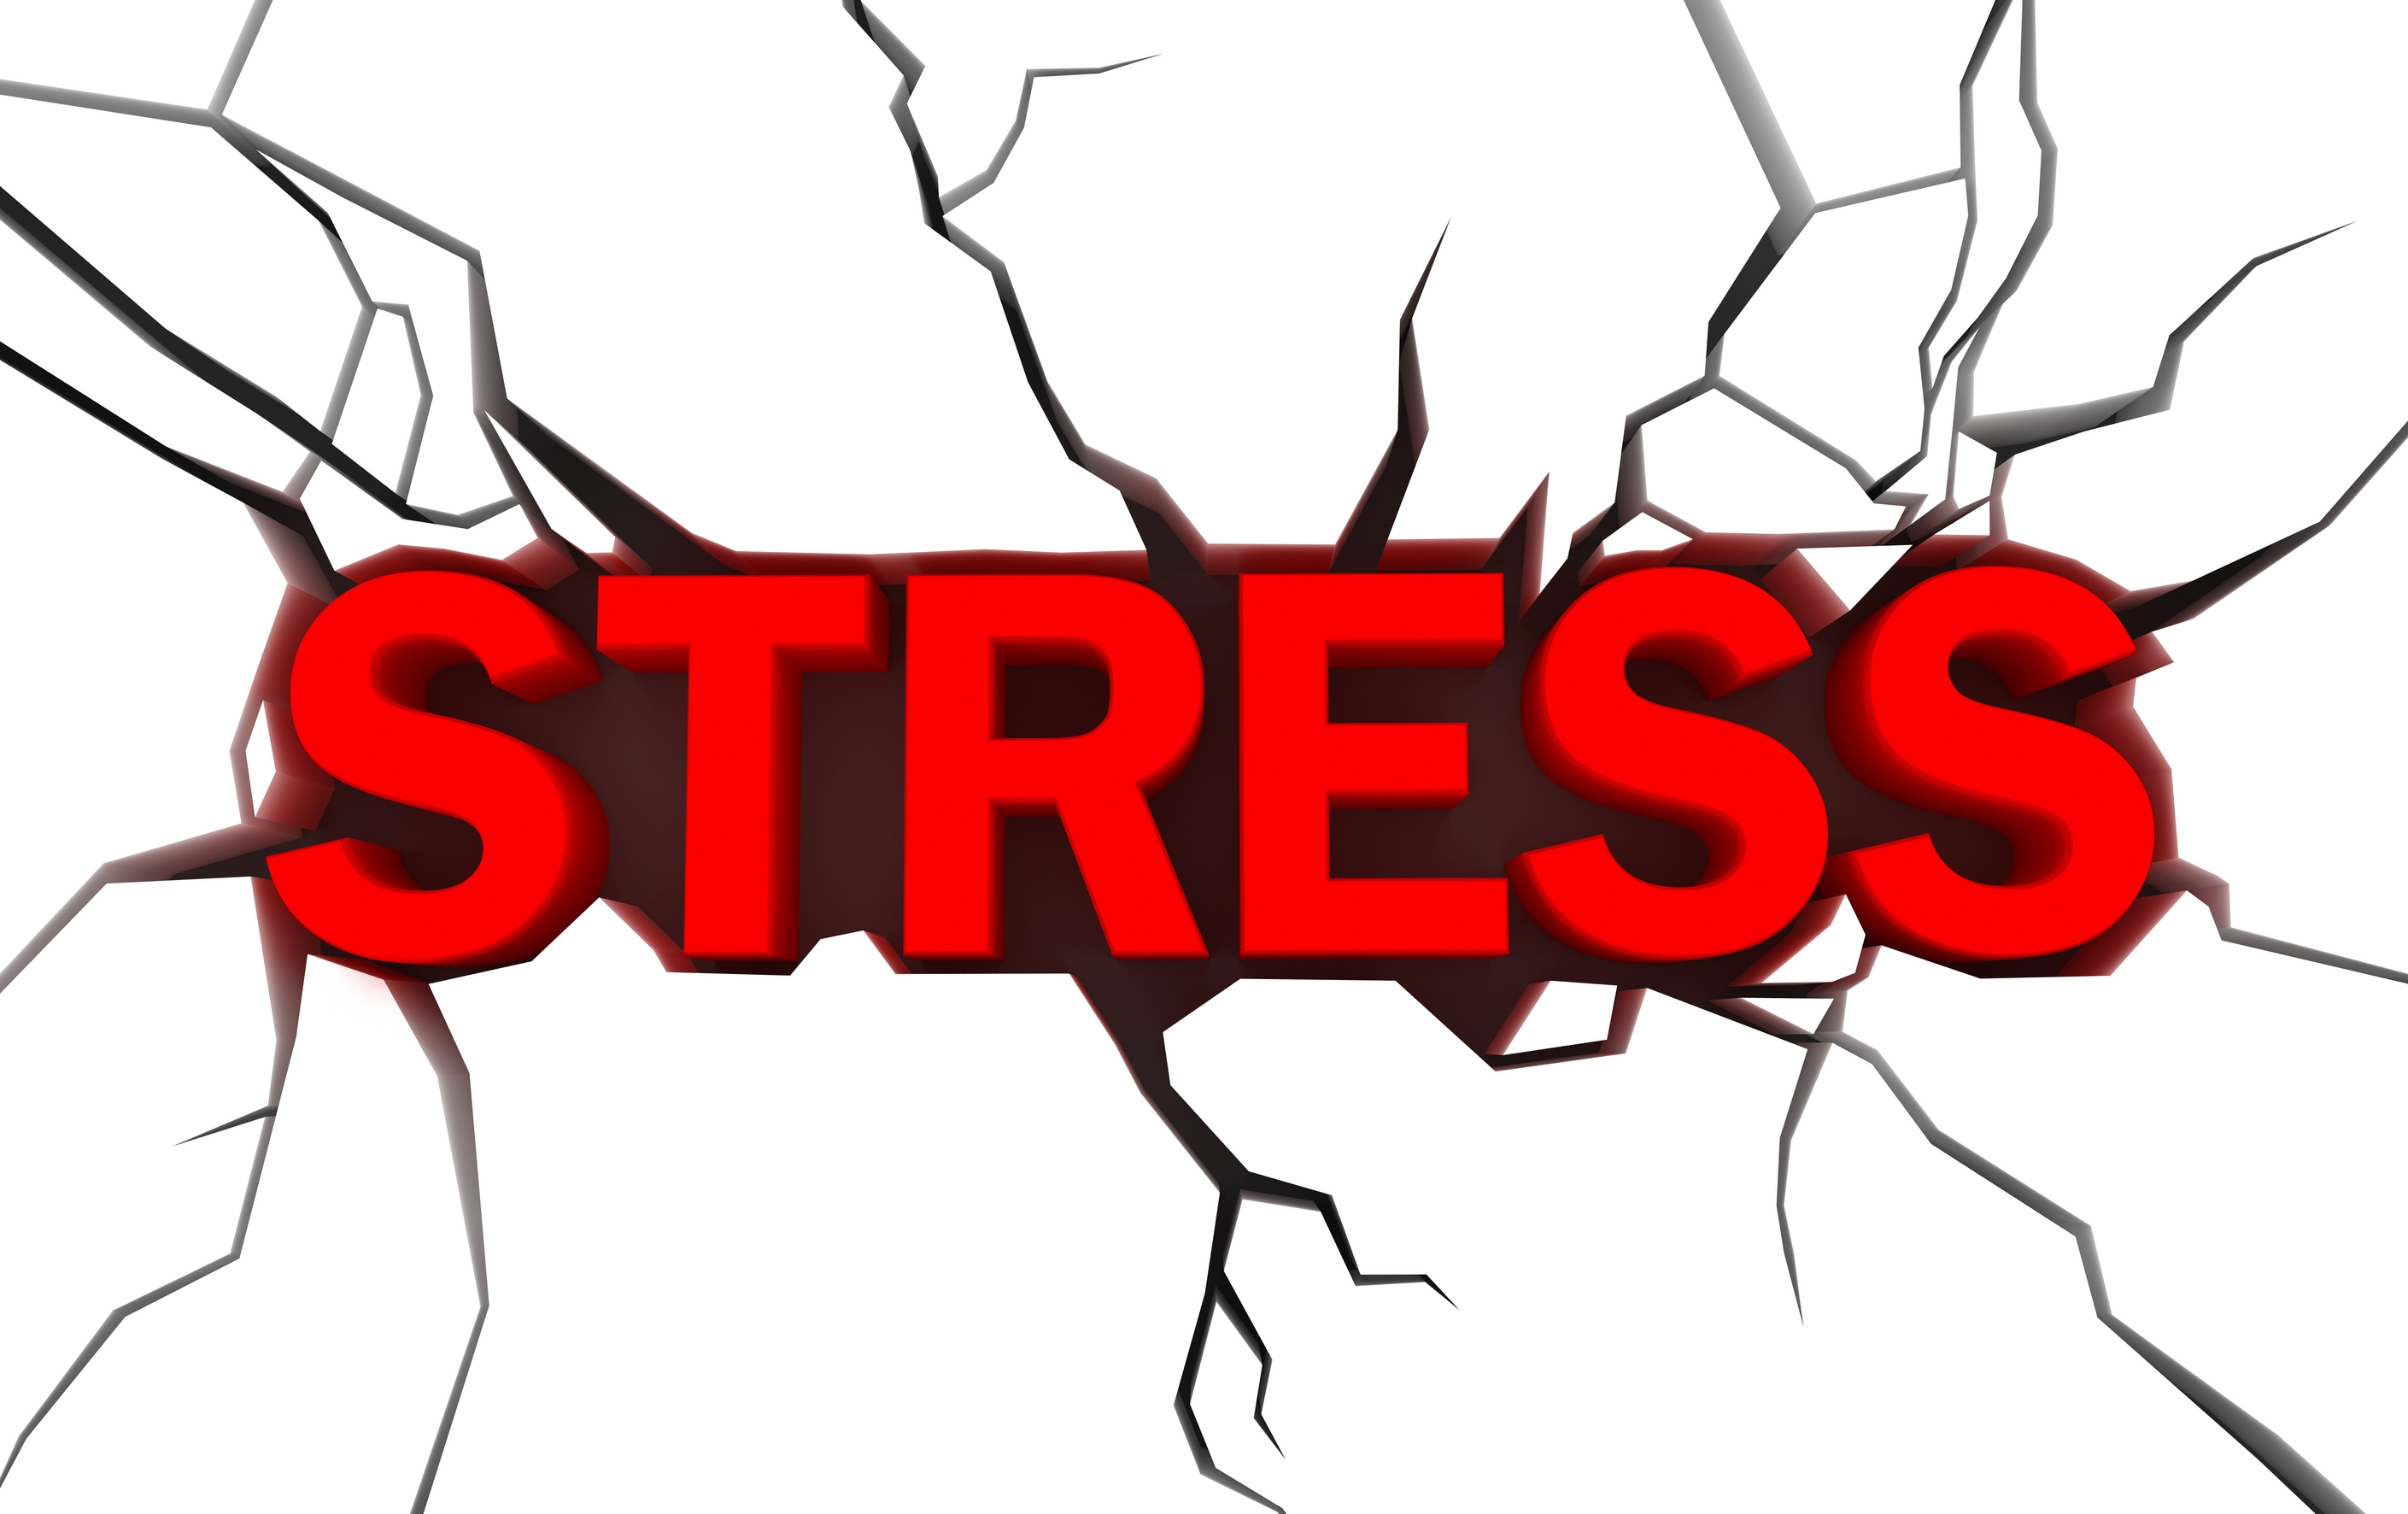 Free clipart of things breaking under stress. Stressed out images download